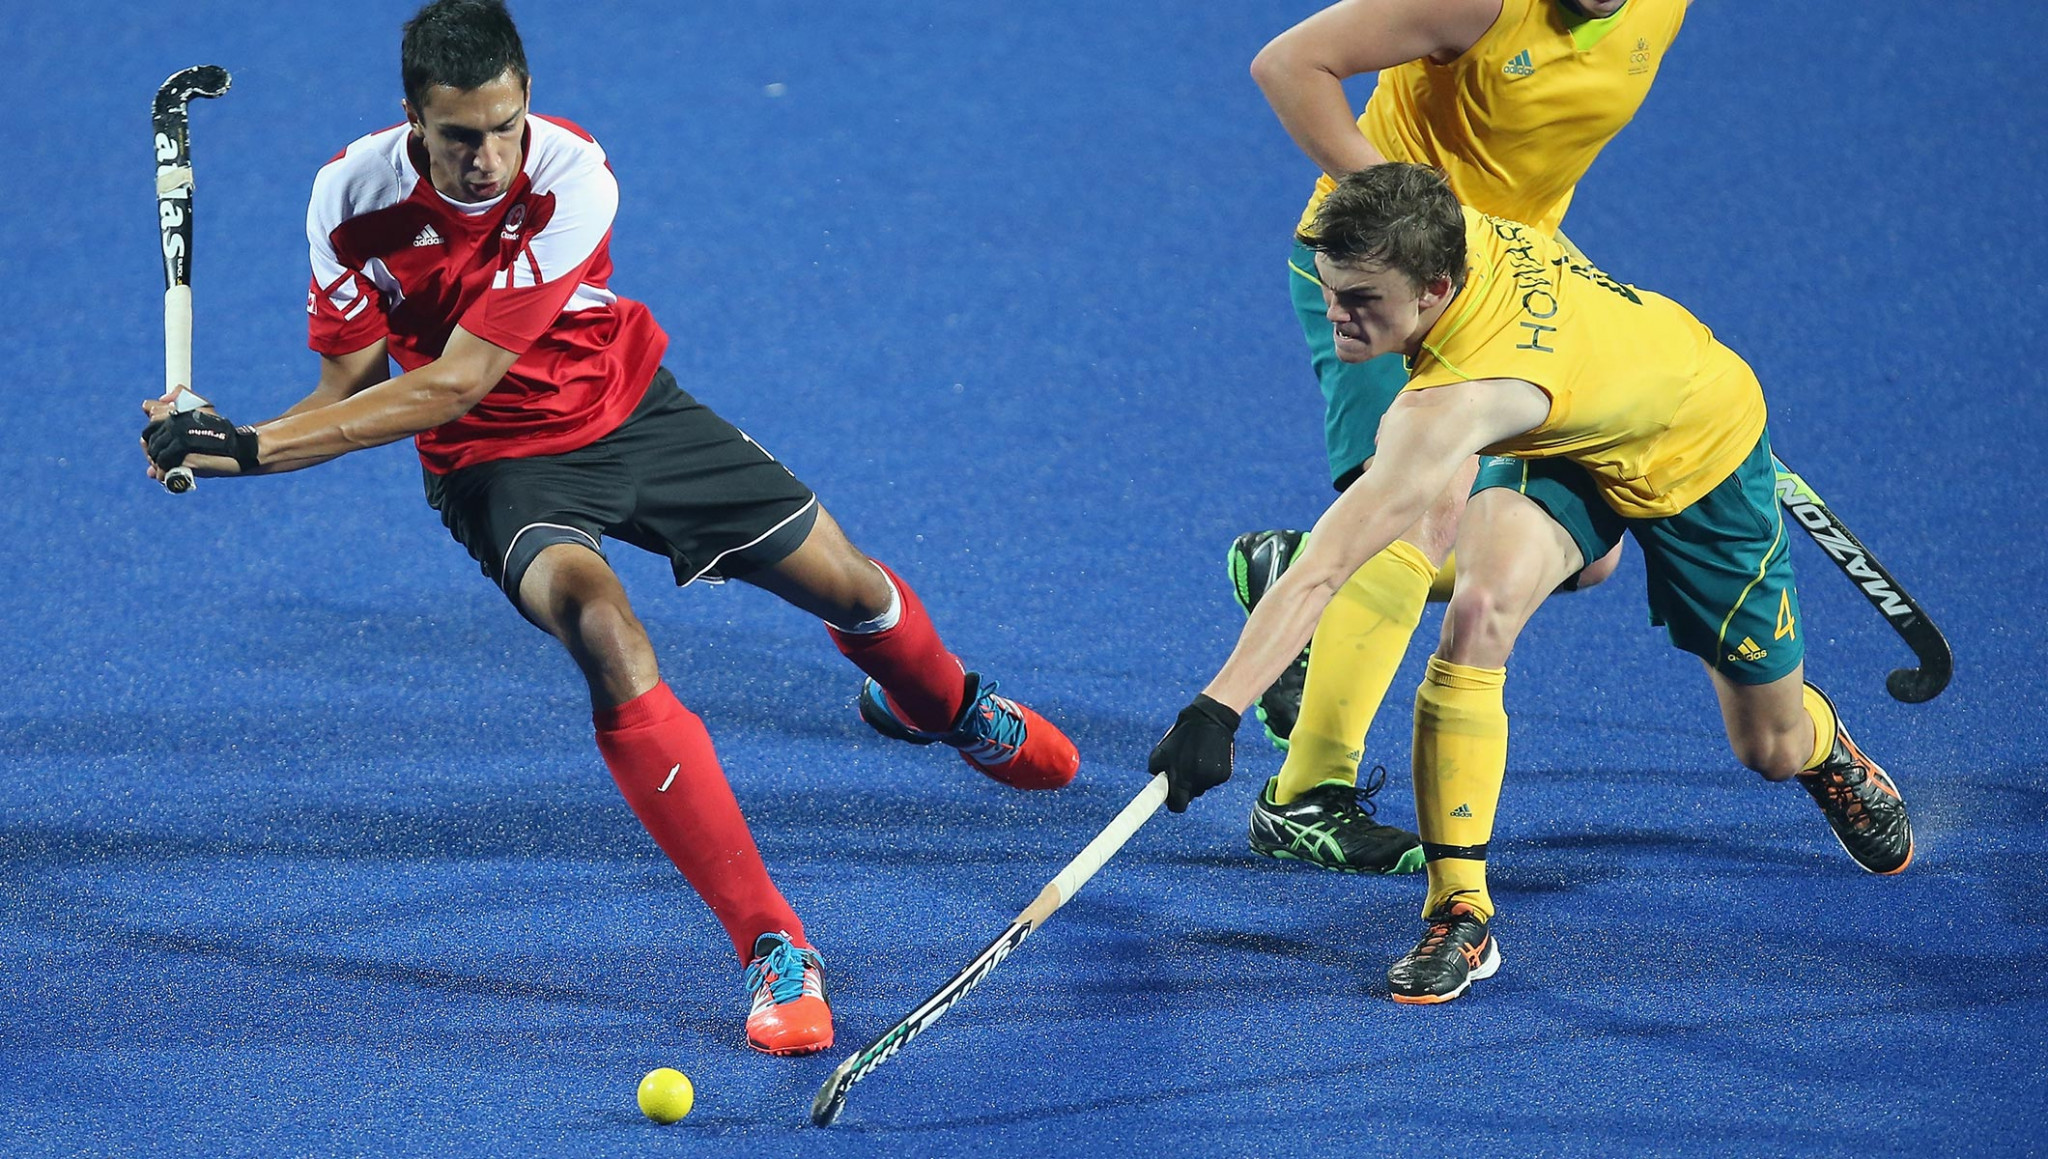 Australia's men won the gold medal when hockey 5s made its debut at the Youth Olympic Games in Nanjing in 2014 having also won at Singapore 2010 when the traditional version of the sport took place ©Getty Images